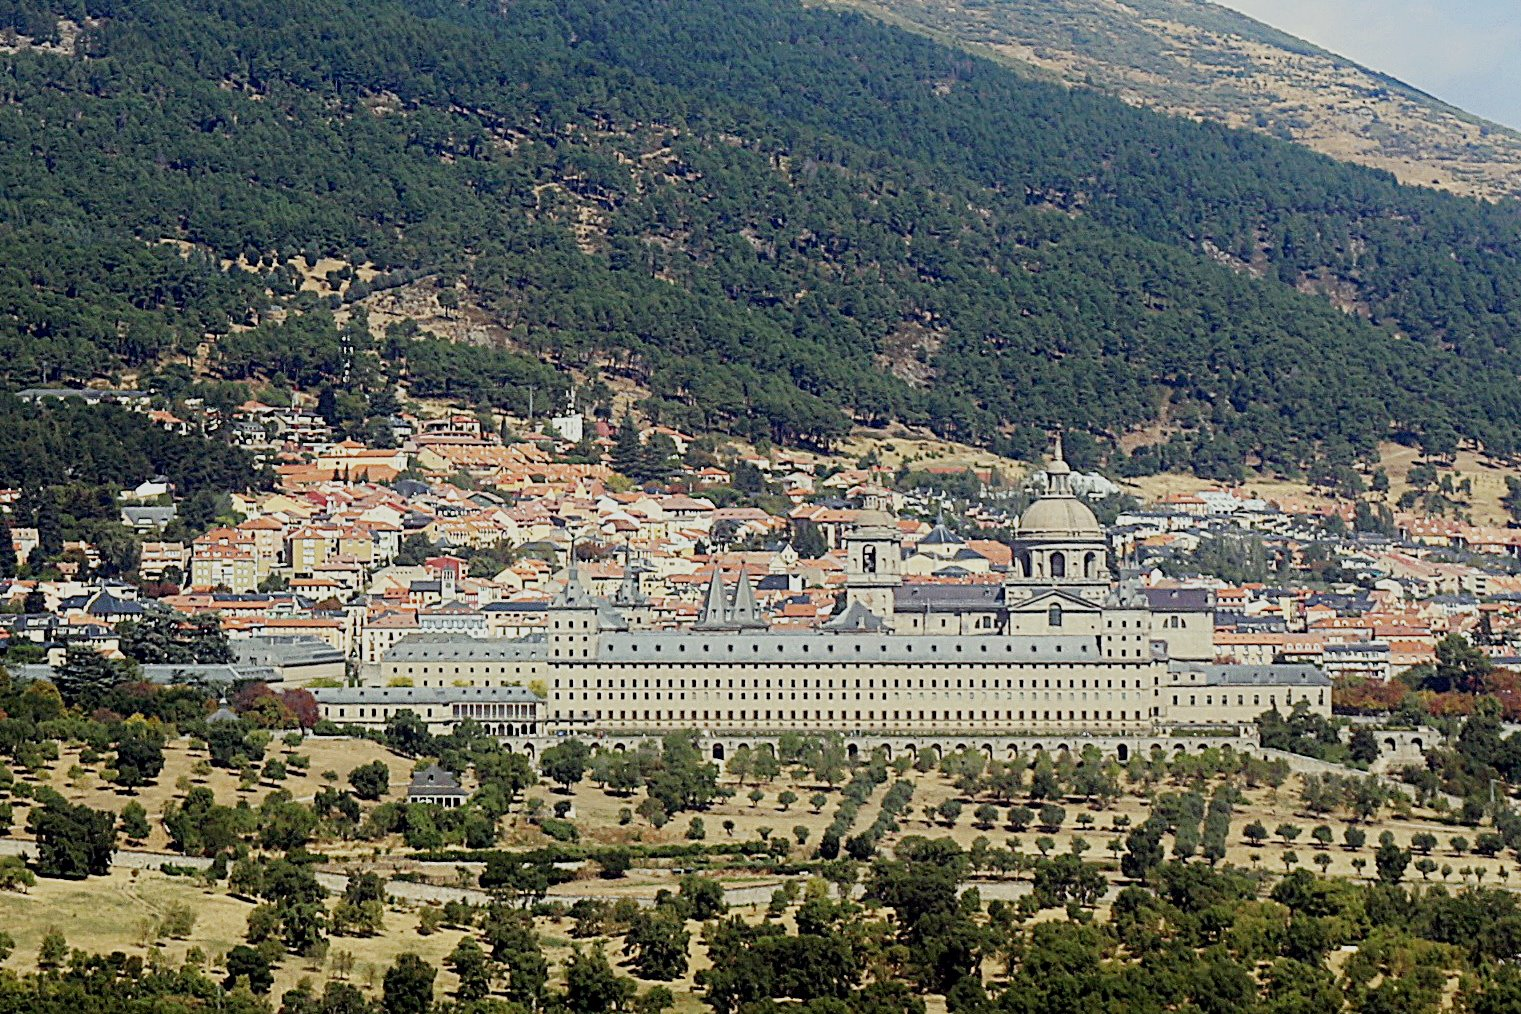 excursion el escorial primavera - Visita al Real Monasterio de El Escorial y tapeo